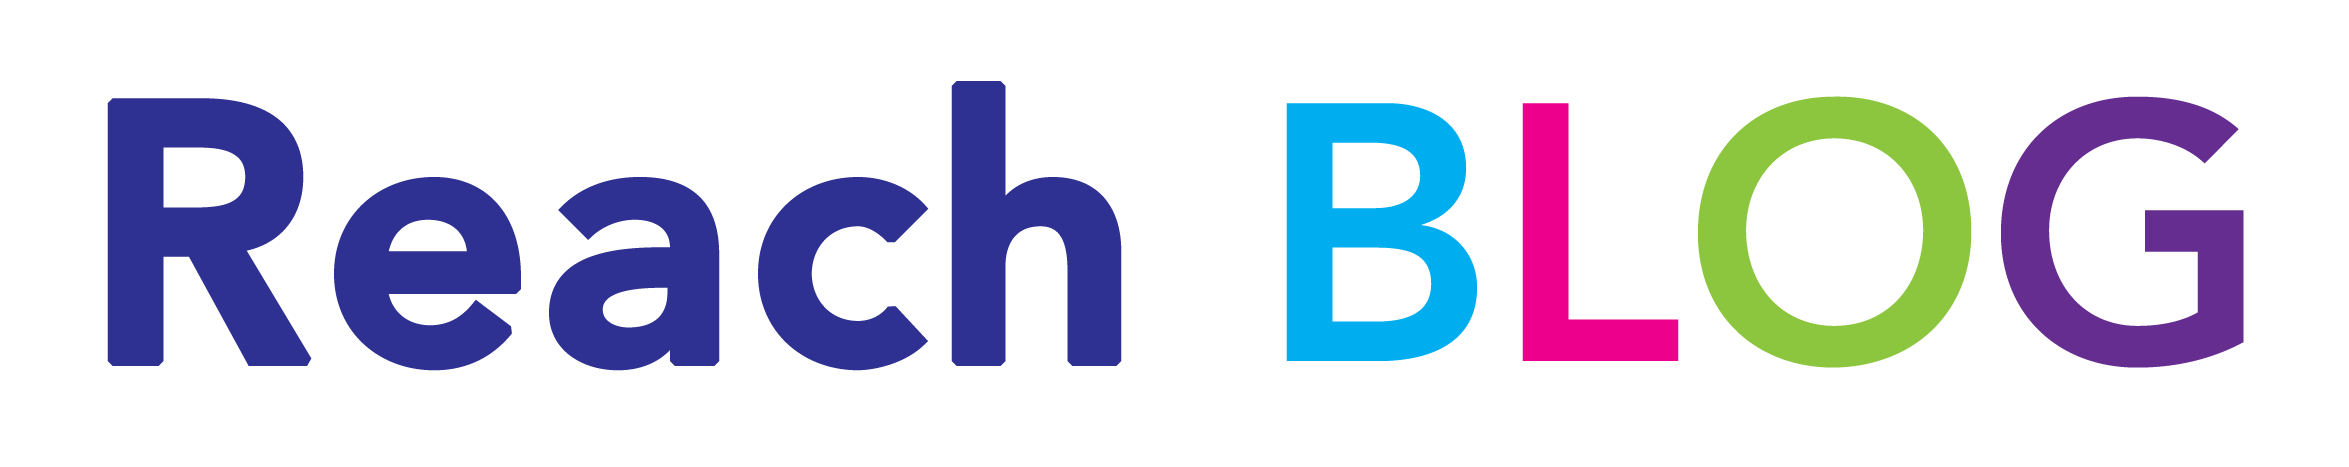 REACH BLOG LOGO